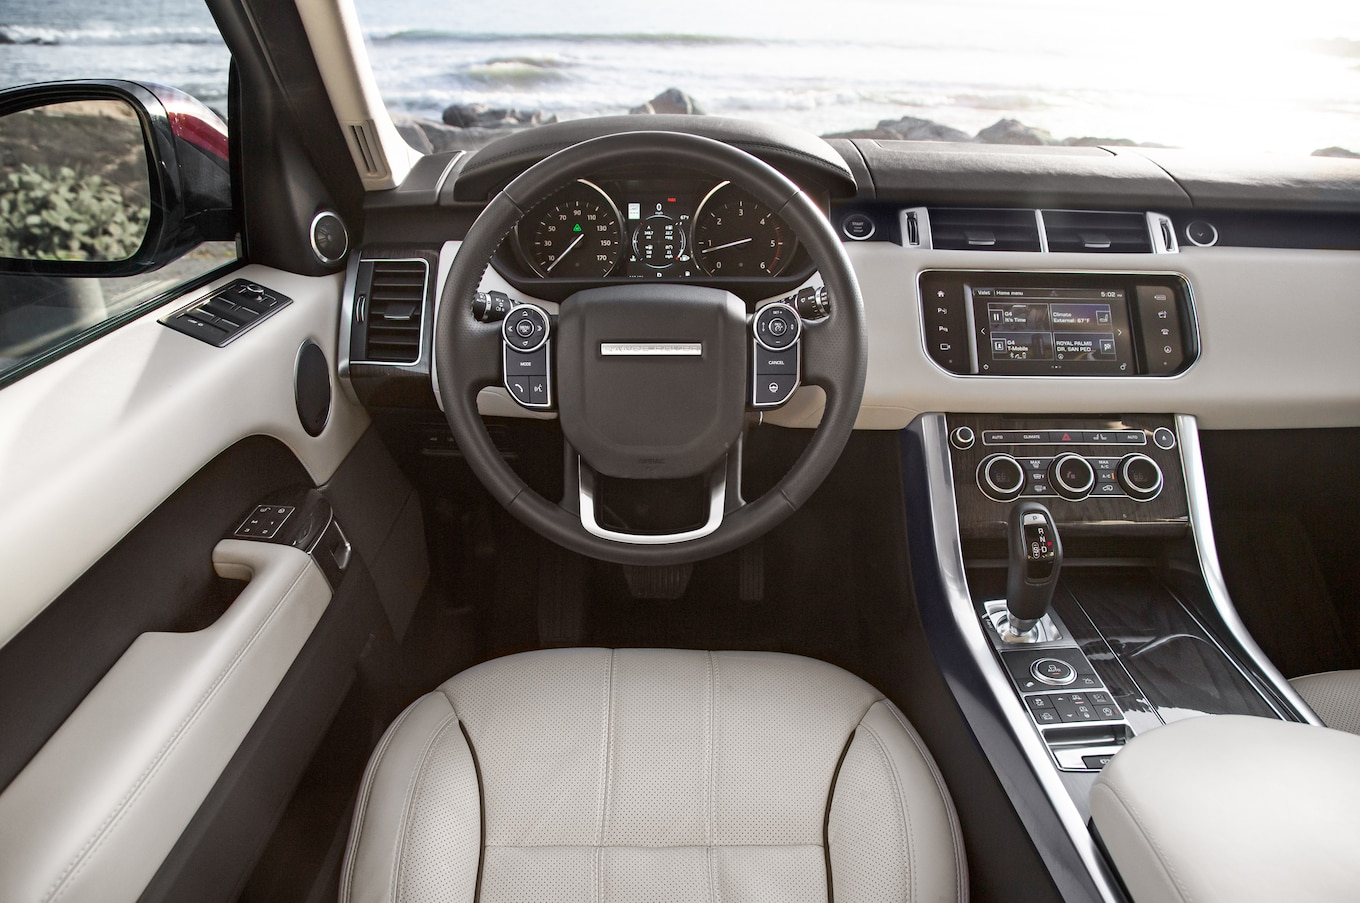 2016 Land Rover Range Rover Td6 Review Long Term Update 3